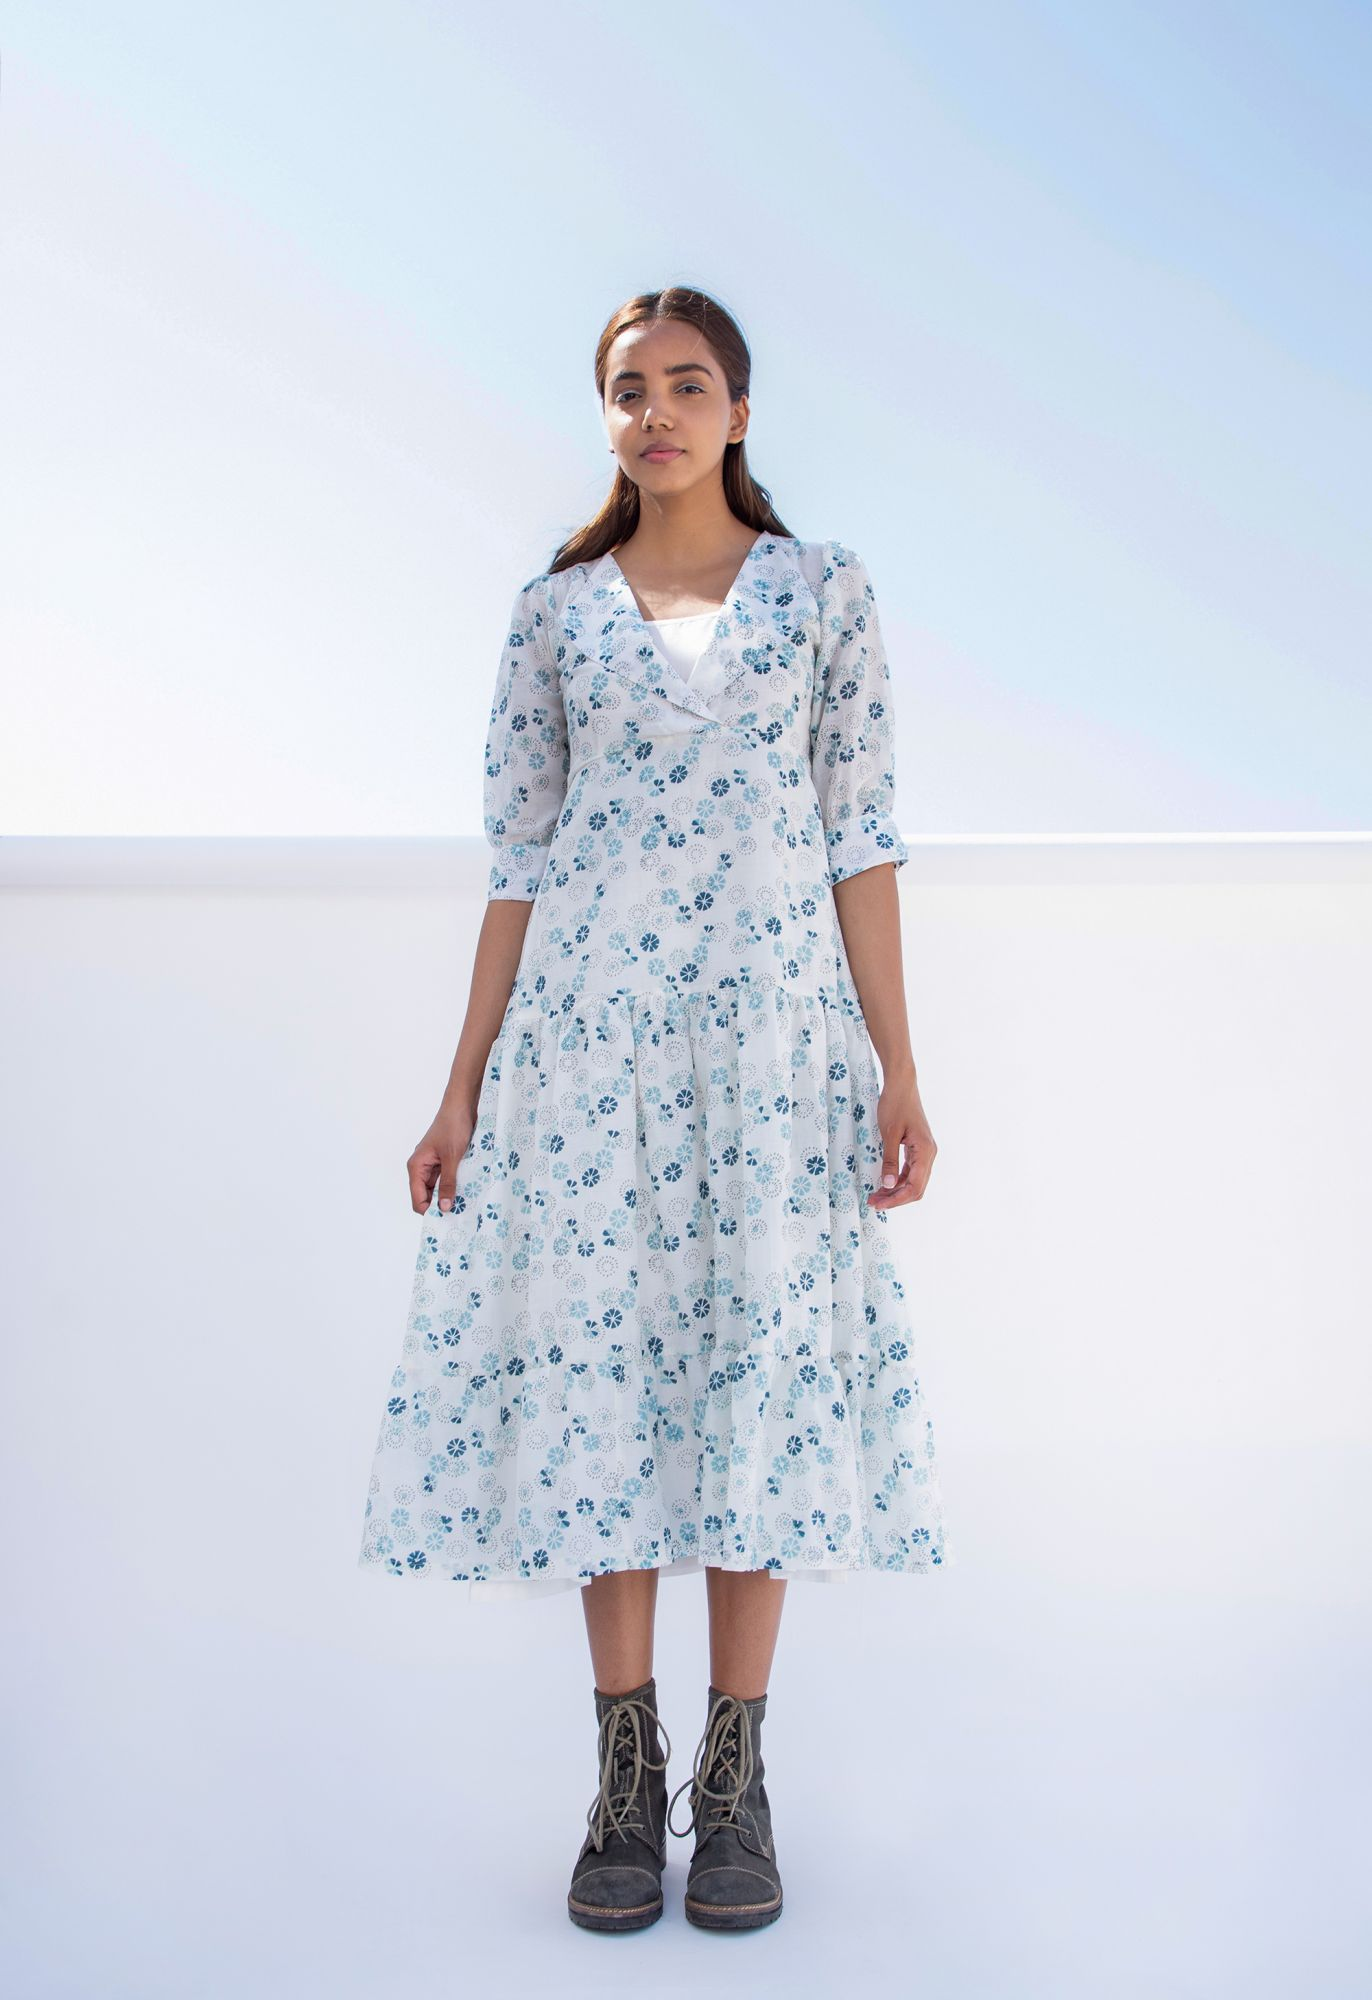 Summer Blue Flora Dress